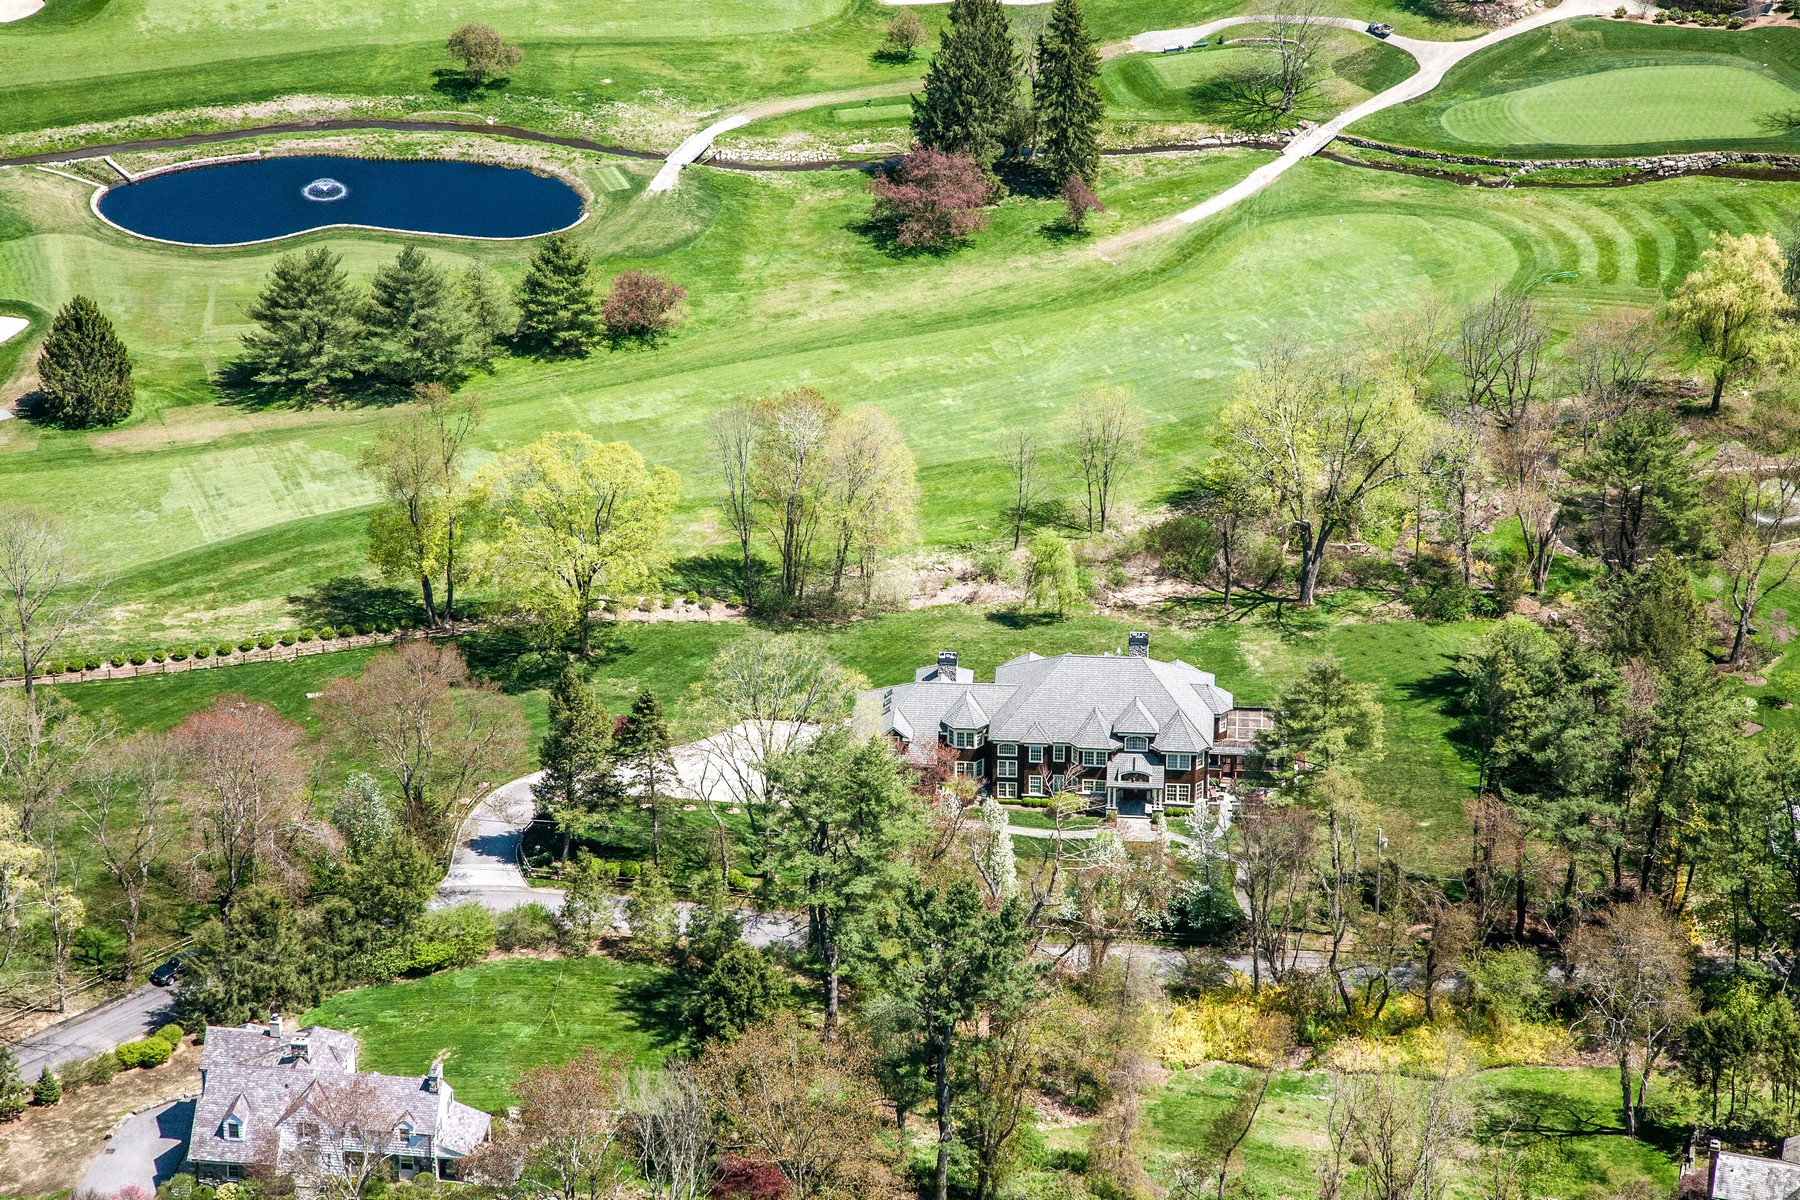 Single Family Homes for Sale at Petersville Farm 12 Petersville Road Mount Kisco, New York 10549 United States